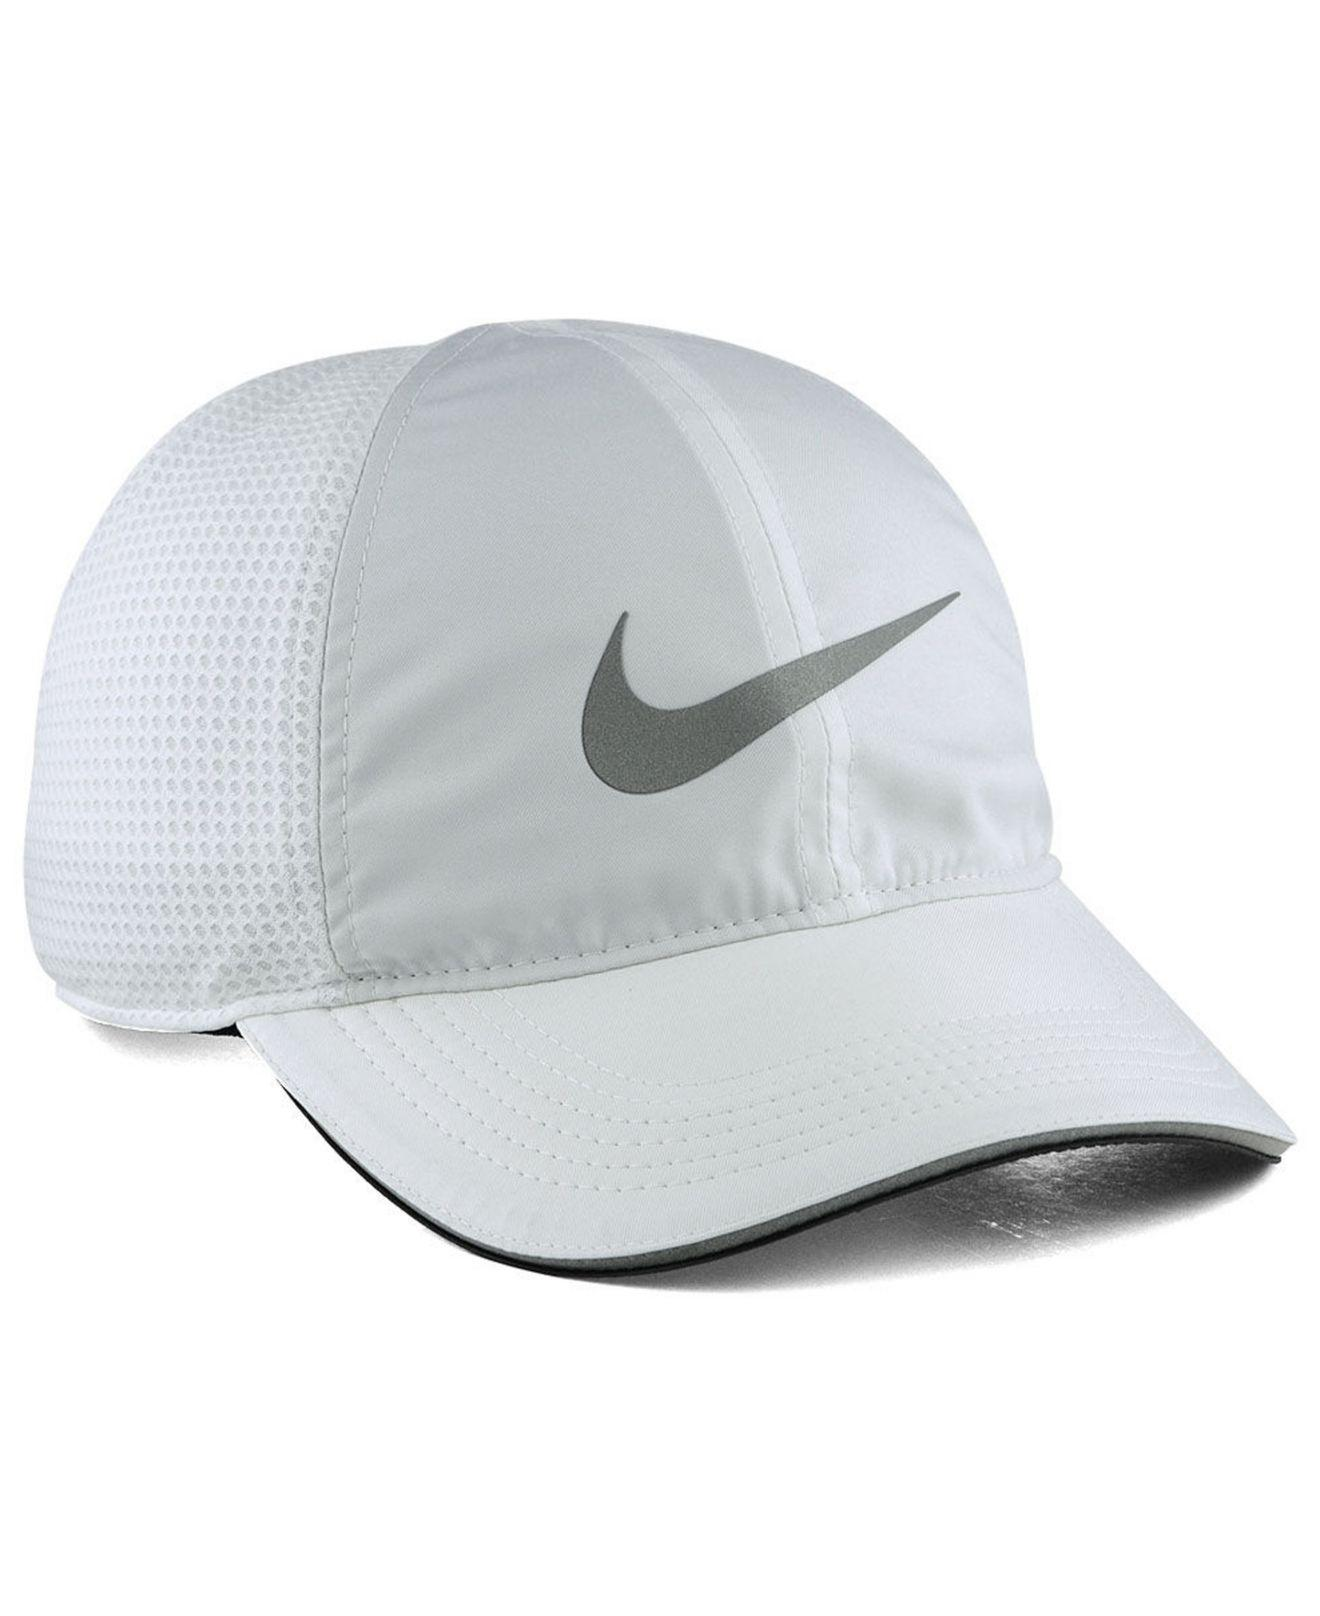 Lyst - Nike Heritage Elite Run Cap in White for Men c7979f37033